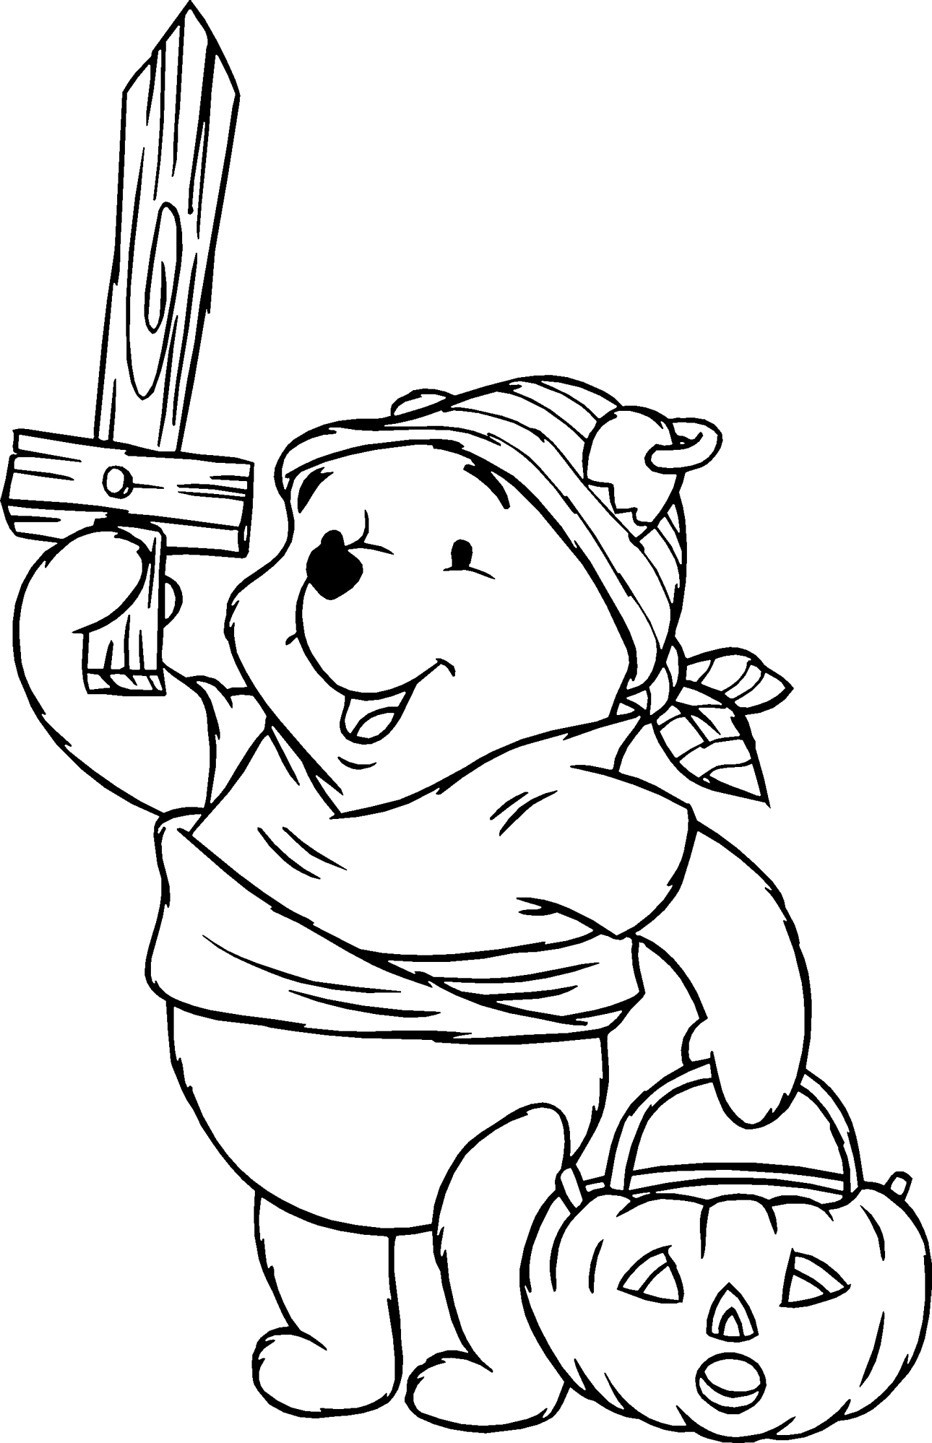 Free Coloring Pages For Halloween Printable  24 Free Printable Halloween Coloring Pages for Kids